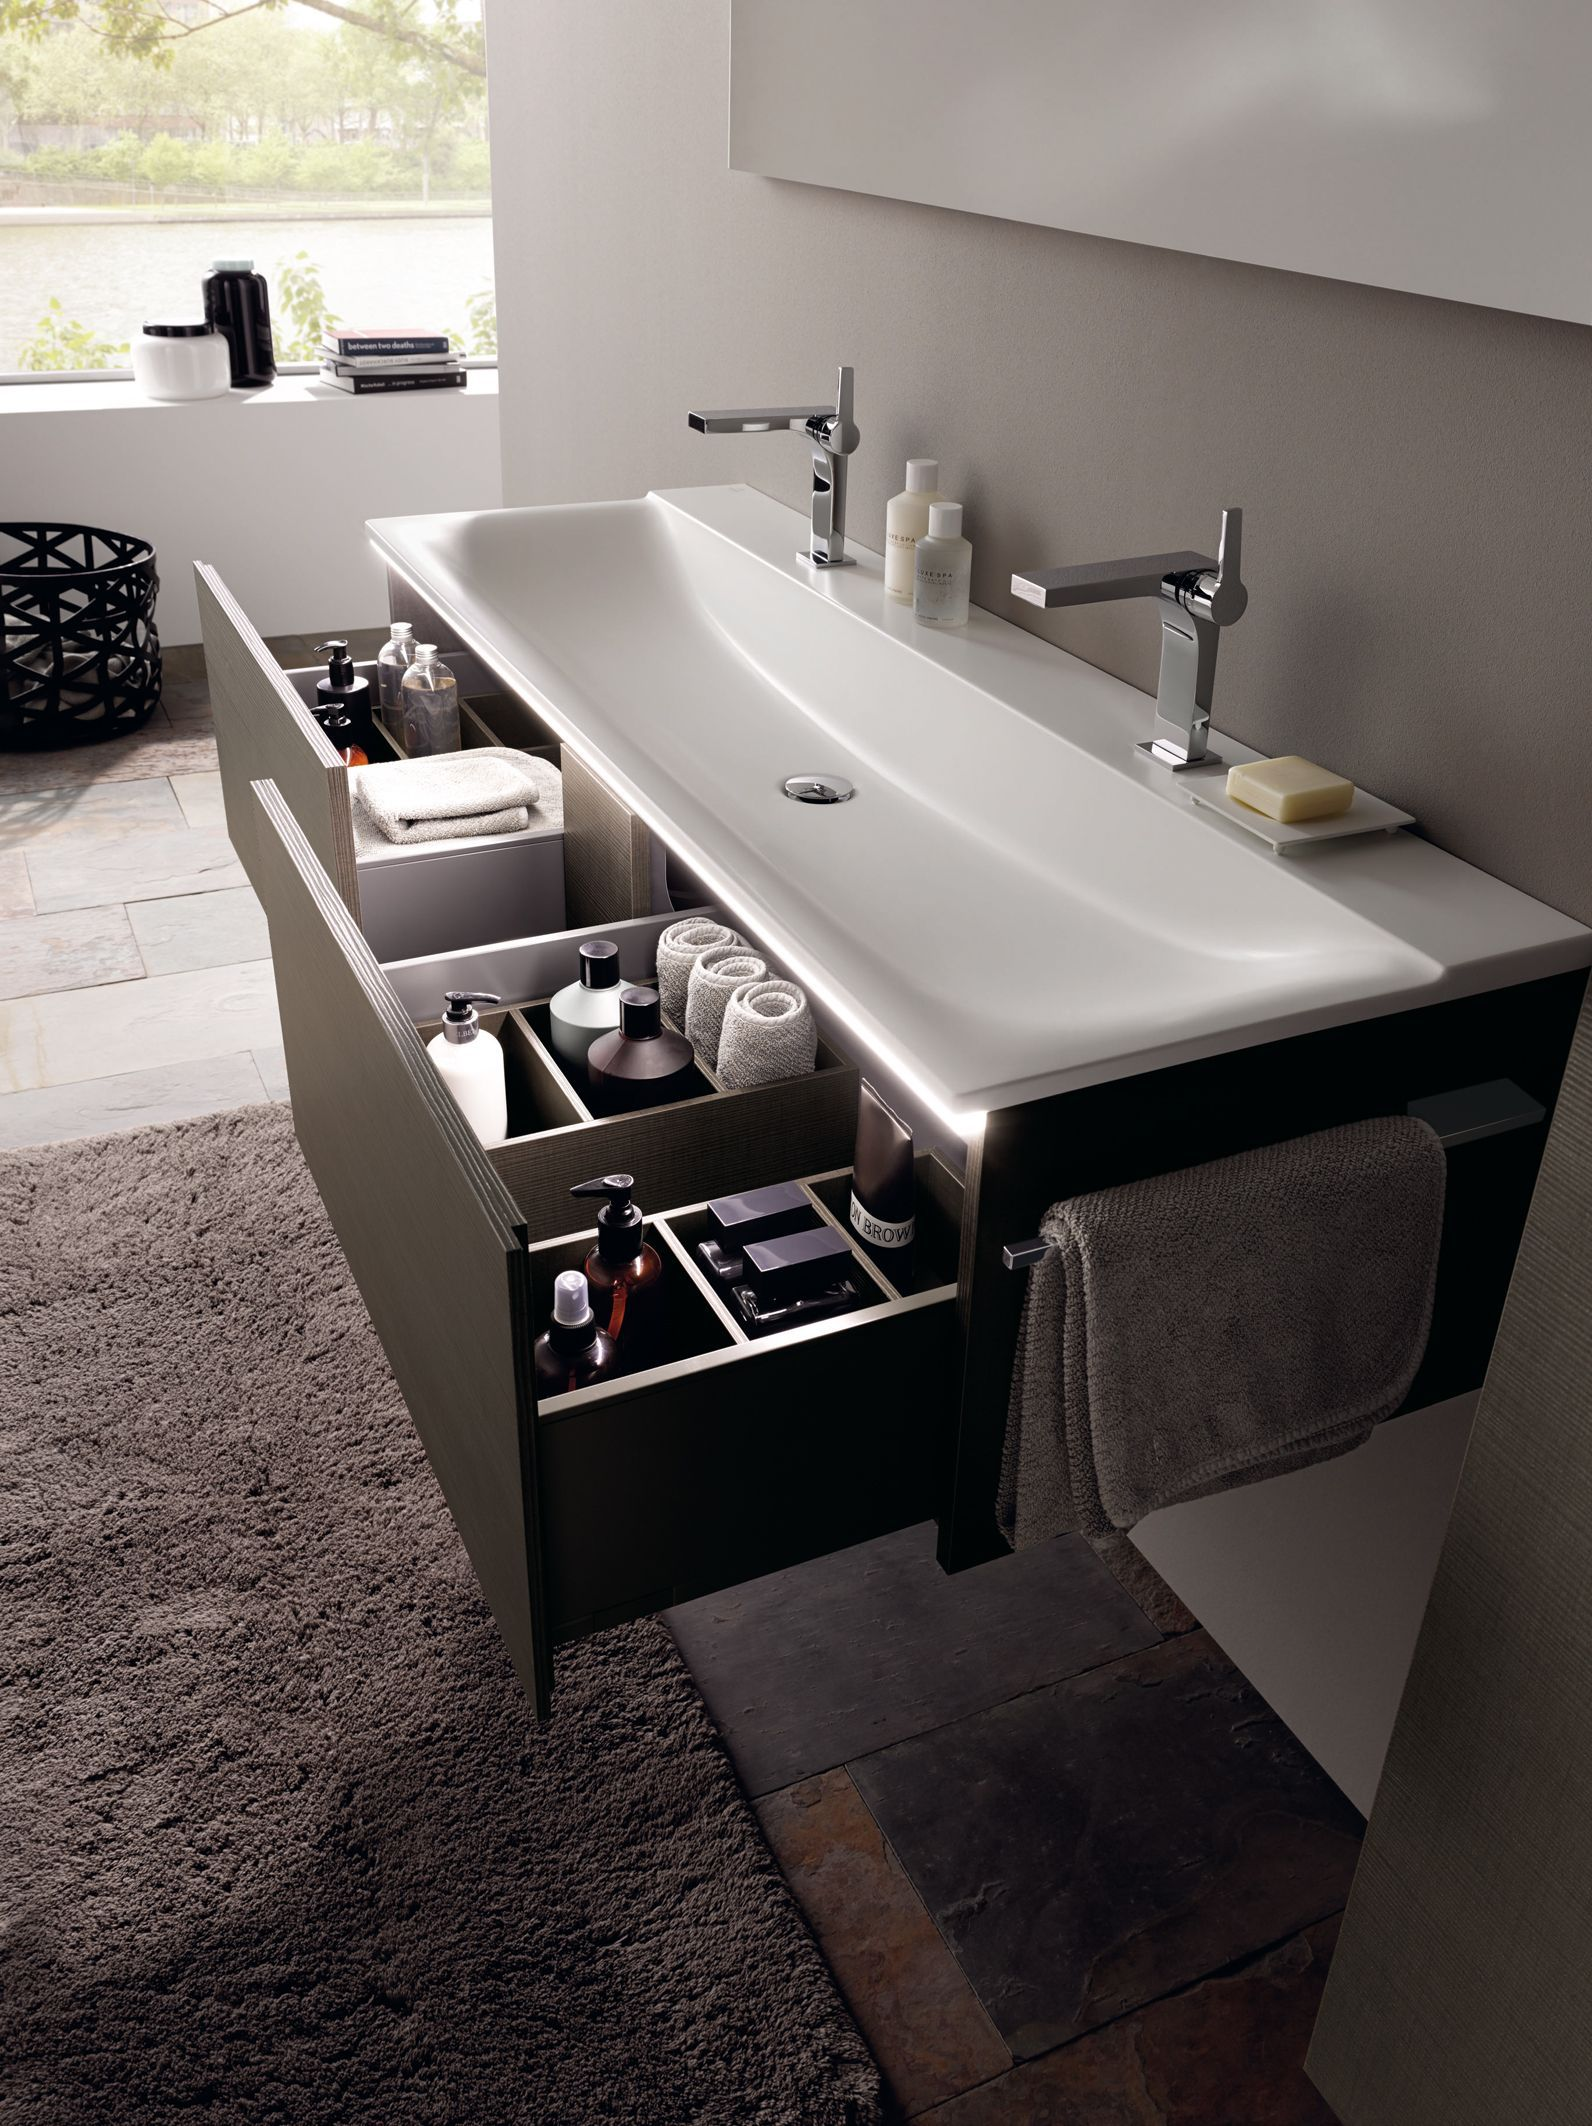 13 Creative Bathroom Sink Ideas You Should Try With Images